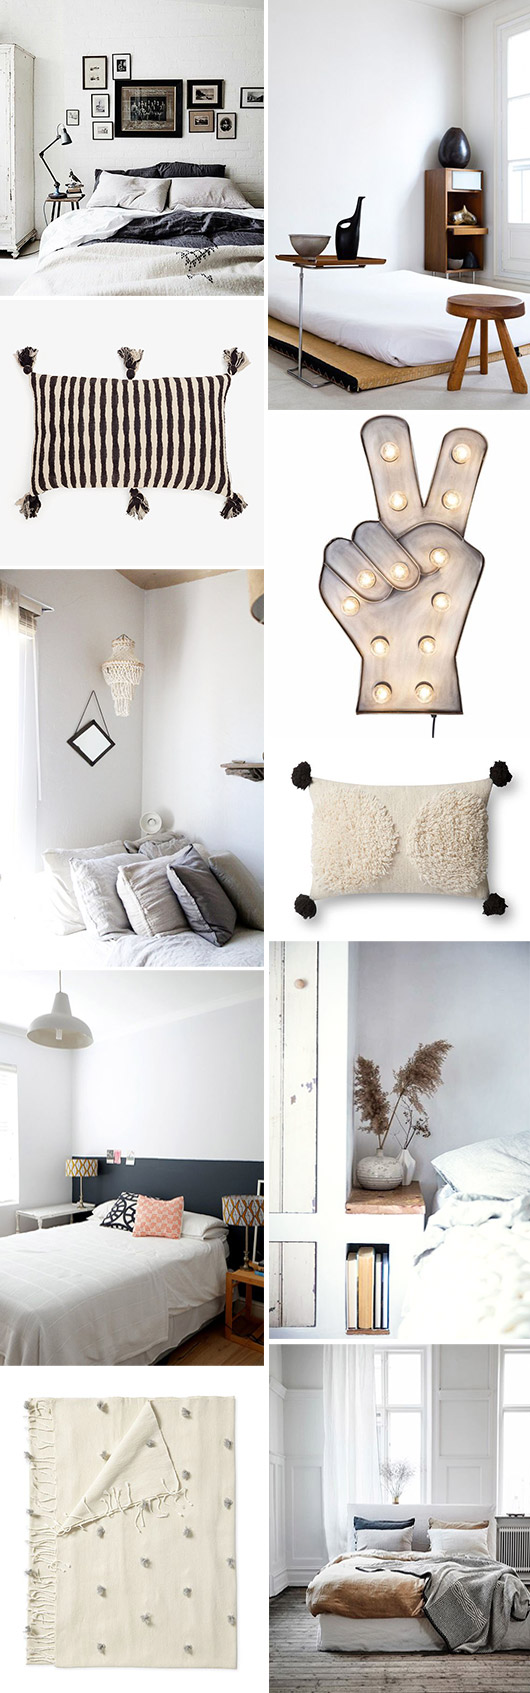 bedroom decor and design inspiration. / sfgirlbybay